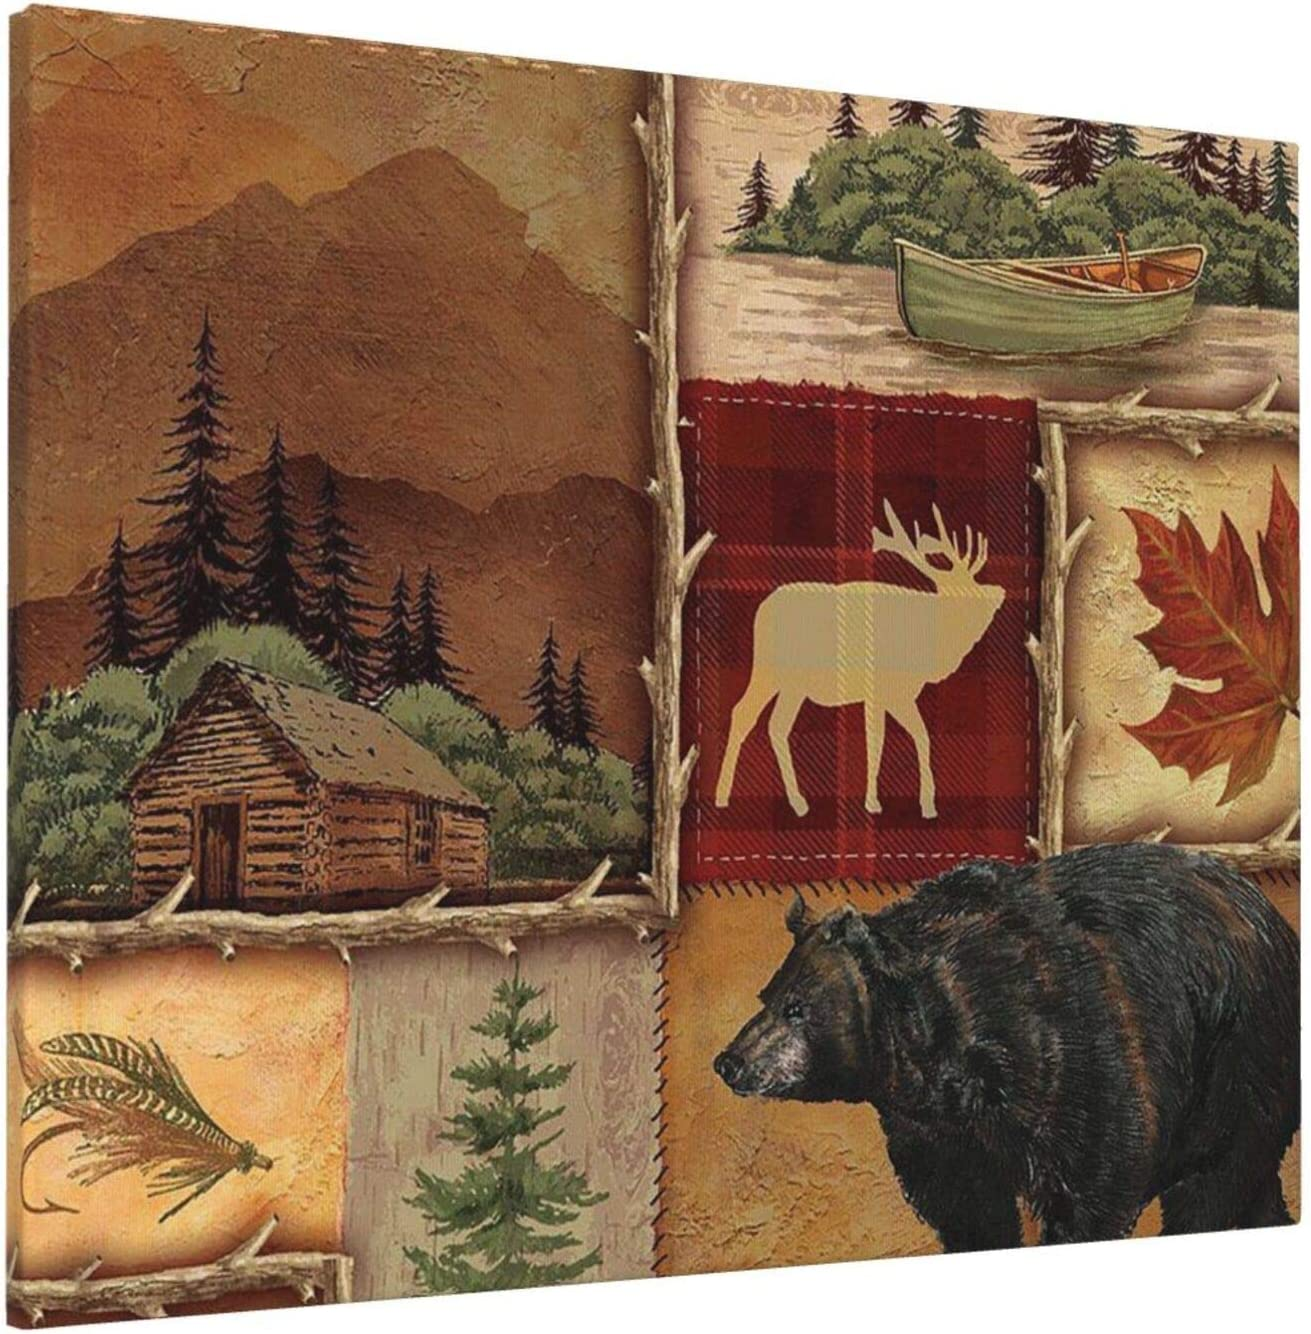 Canvas Wall Art,Lodge Style Northwoods Cabin Painting Home Artwork Print For Wall,Living Room,Bedroom,Kitchen,Office Decor,16x20 Inch